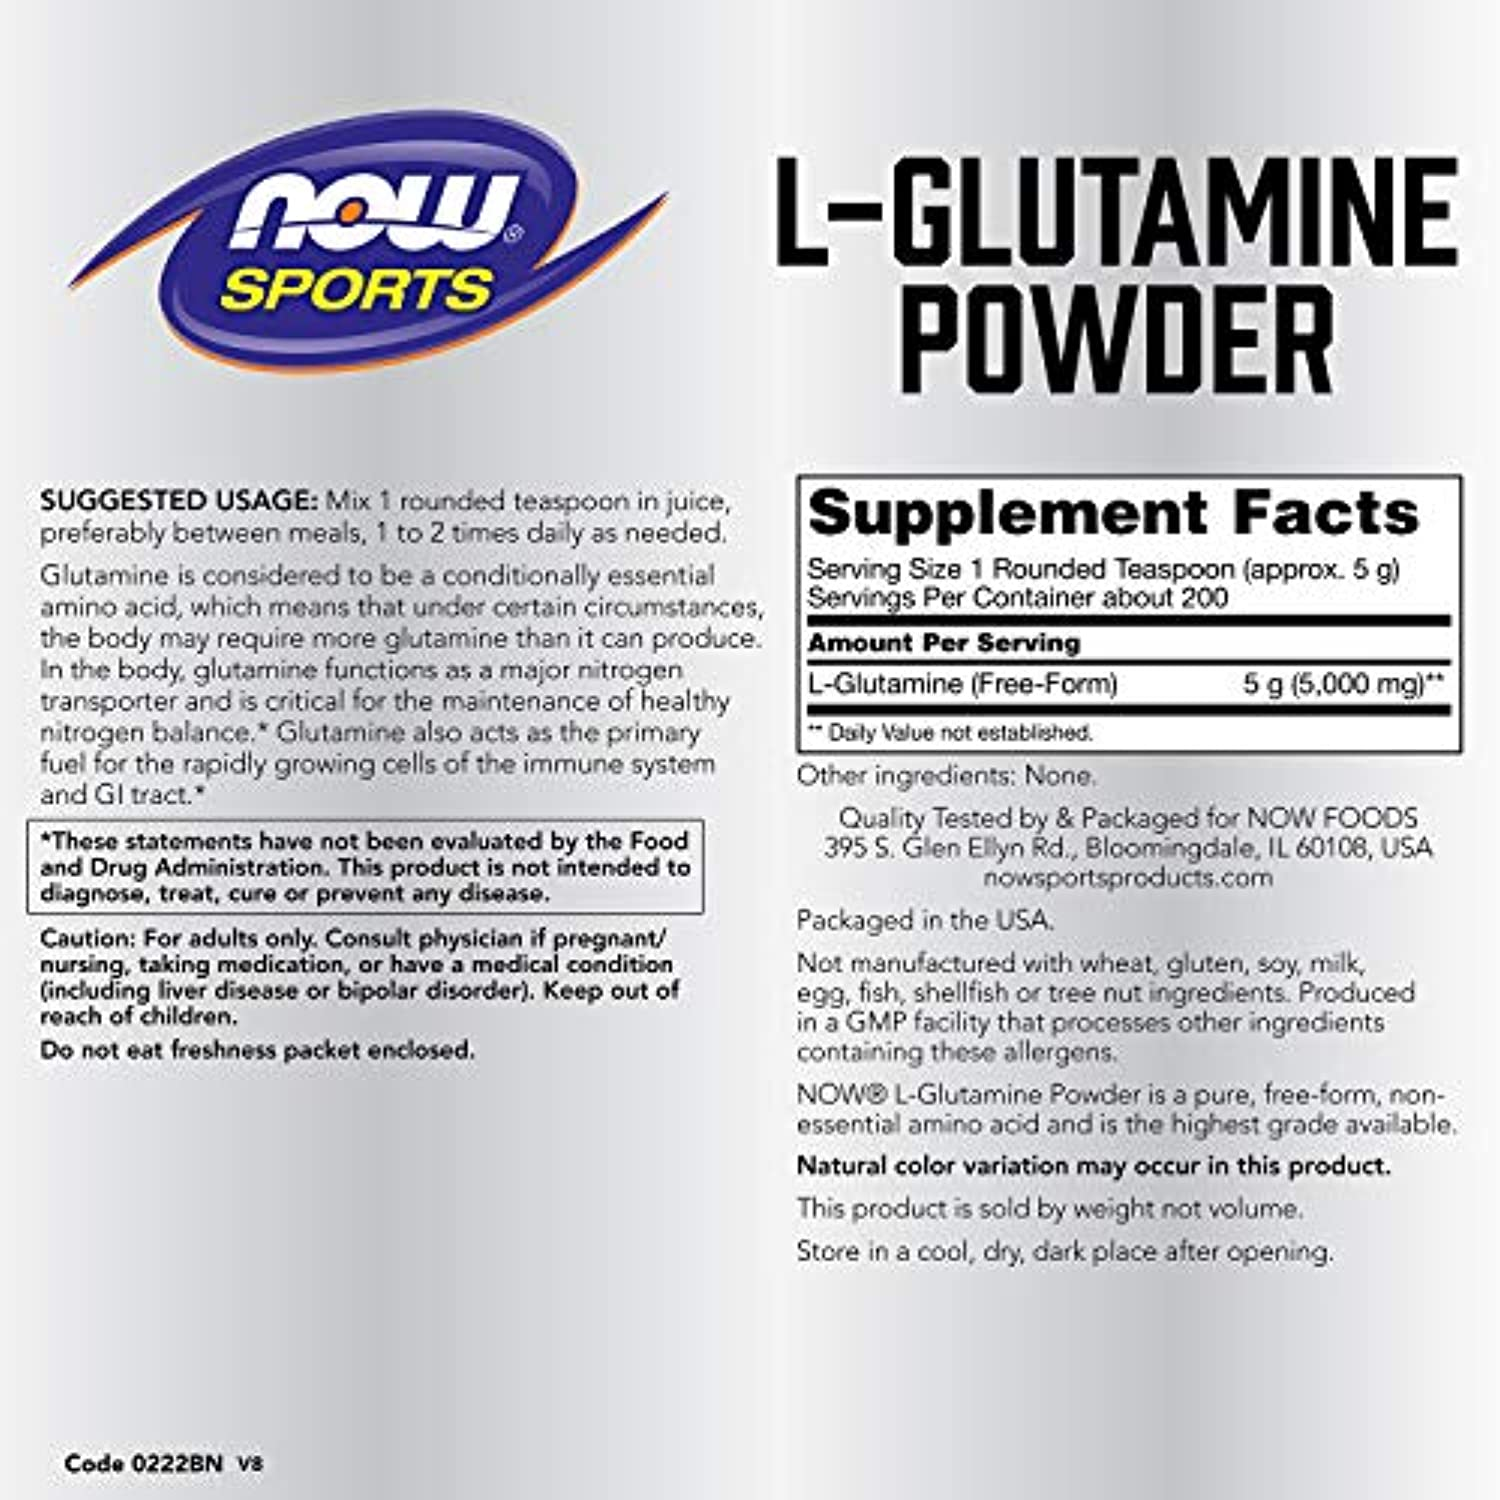 Classier: Buy NOW Foods Now Sports Nutrition, L-Glutamine Powder, 35.2 Ounce (Pack of 1)